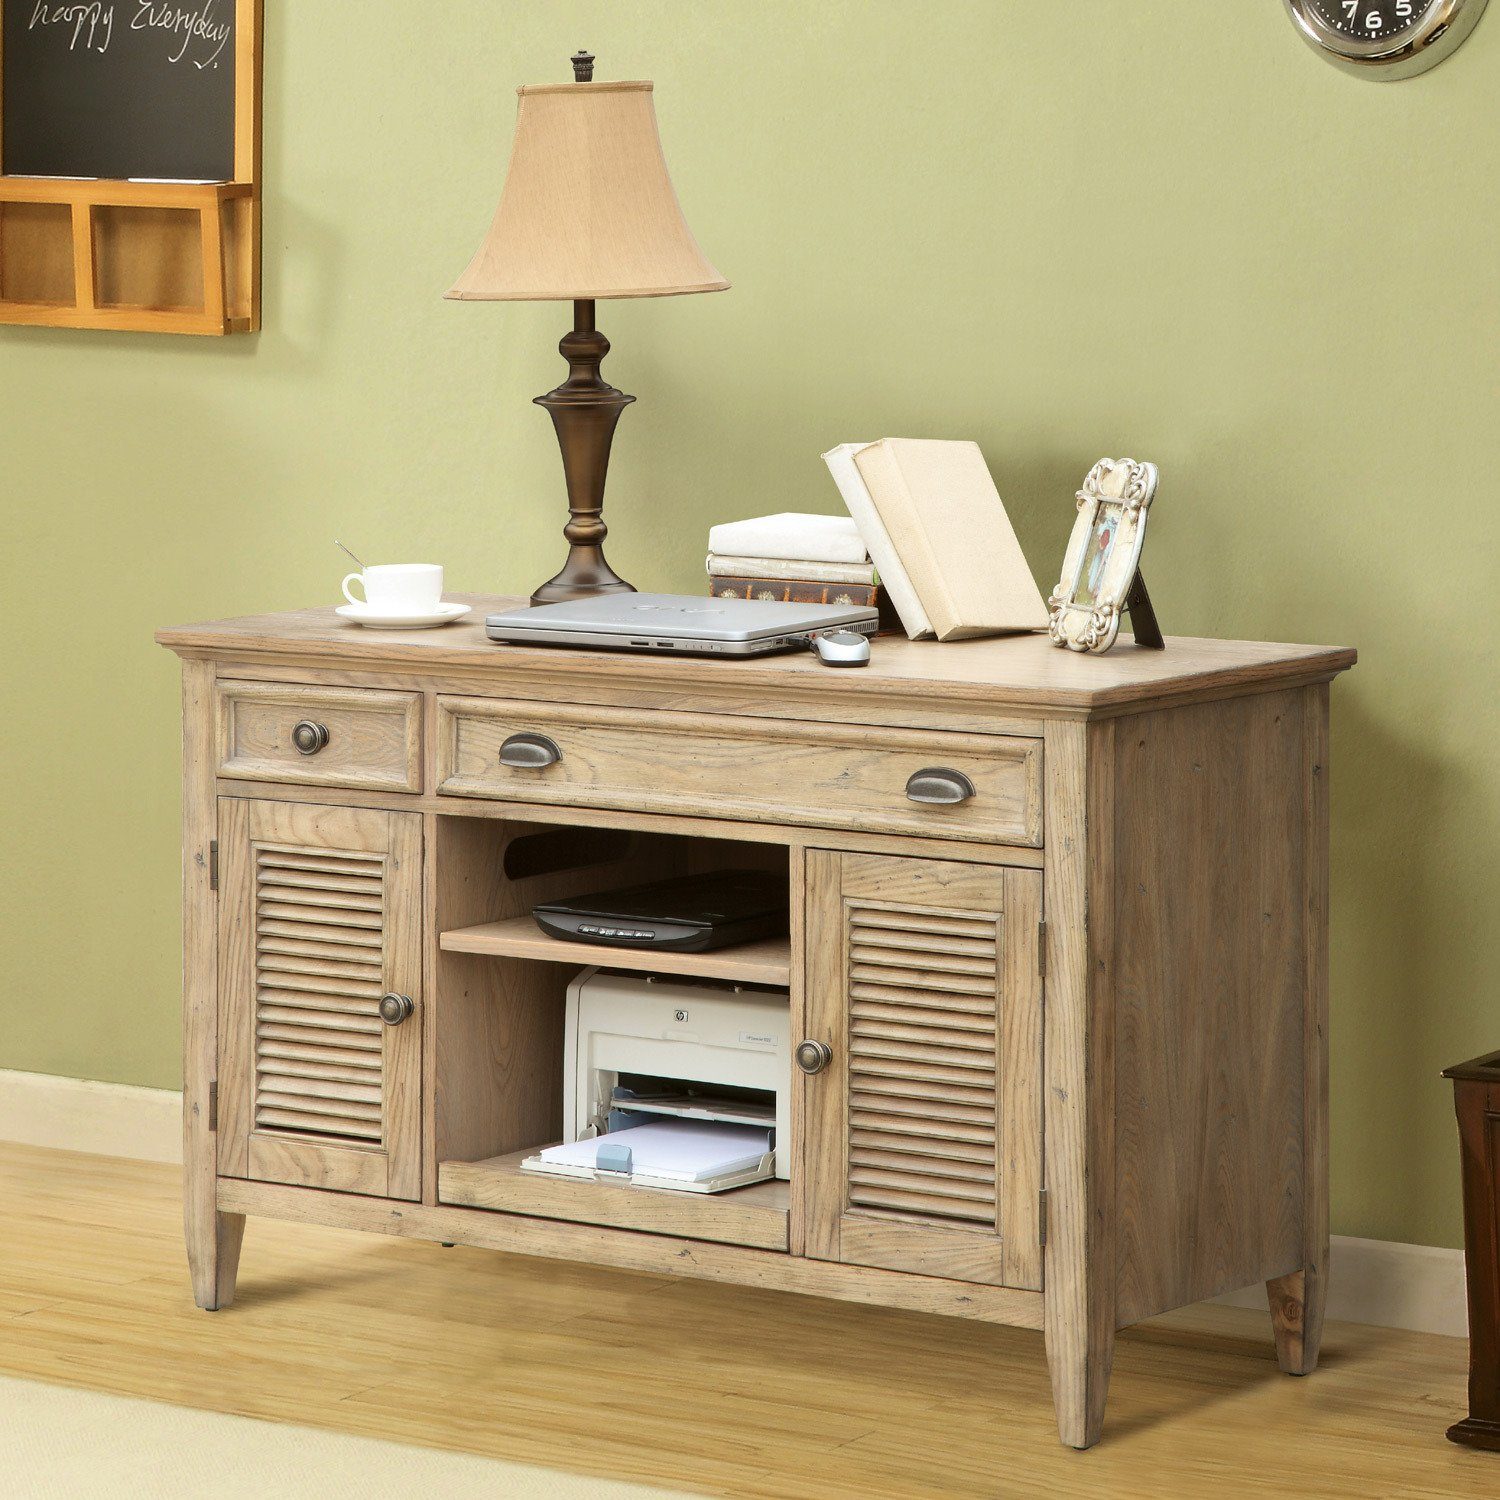 Amazon.com : Riverside Furniture Coventry Credenza Desk In Weathered  Driftwood : Computer Desks : Office Products